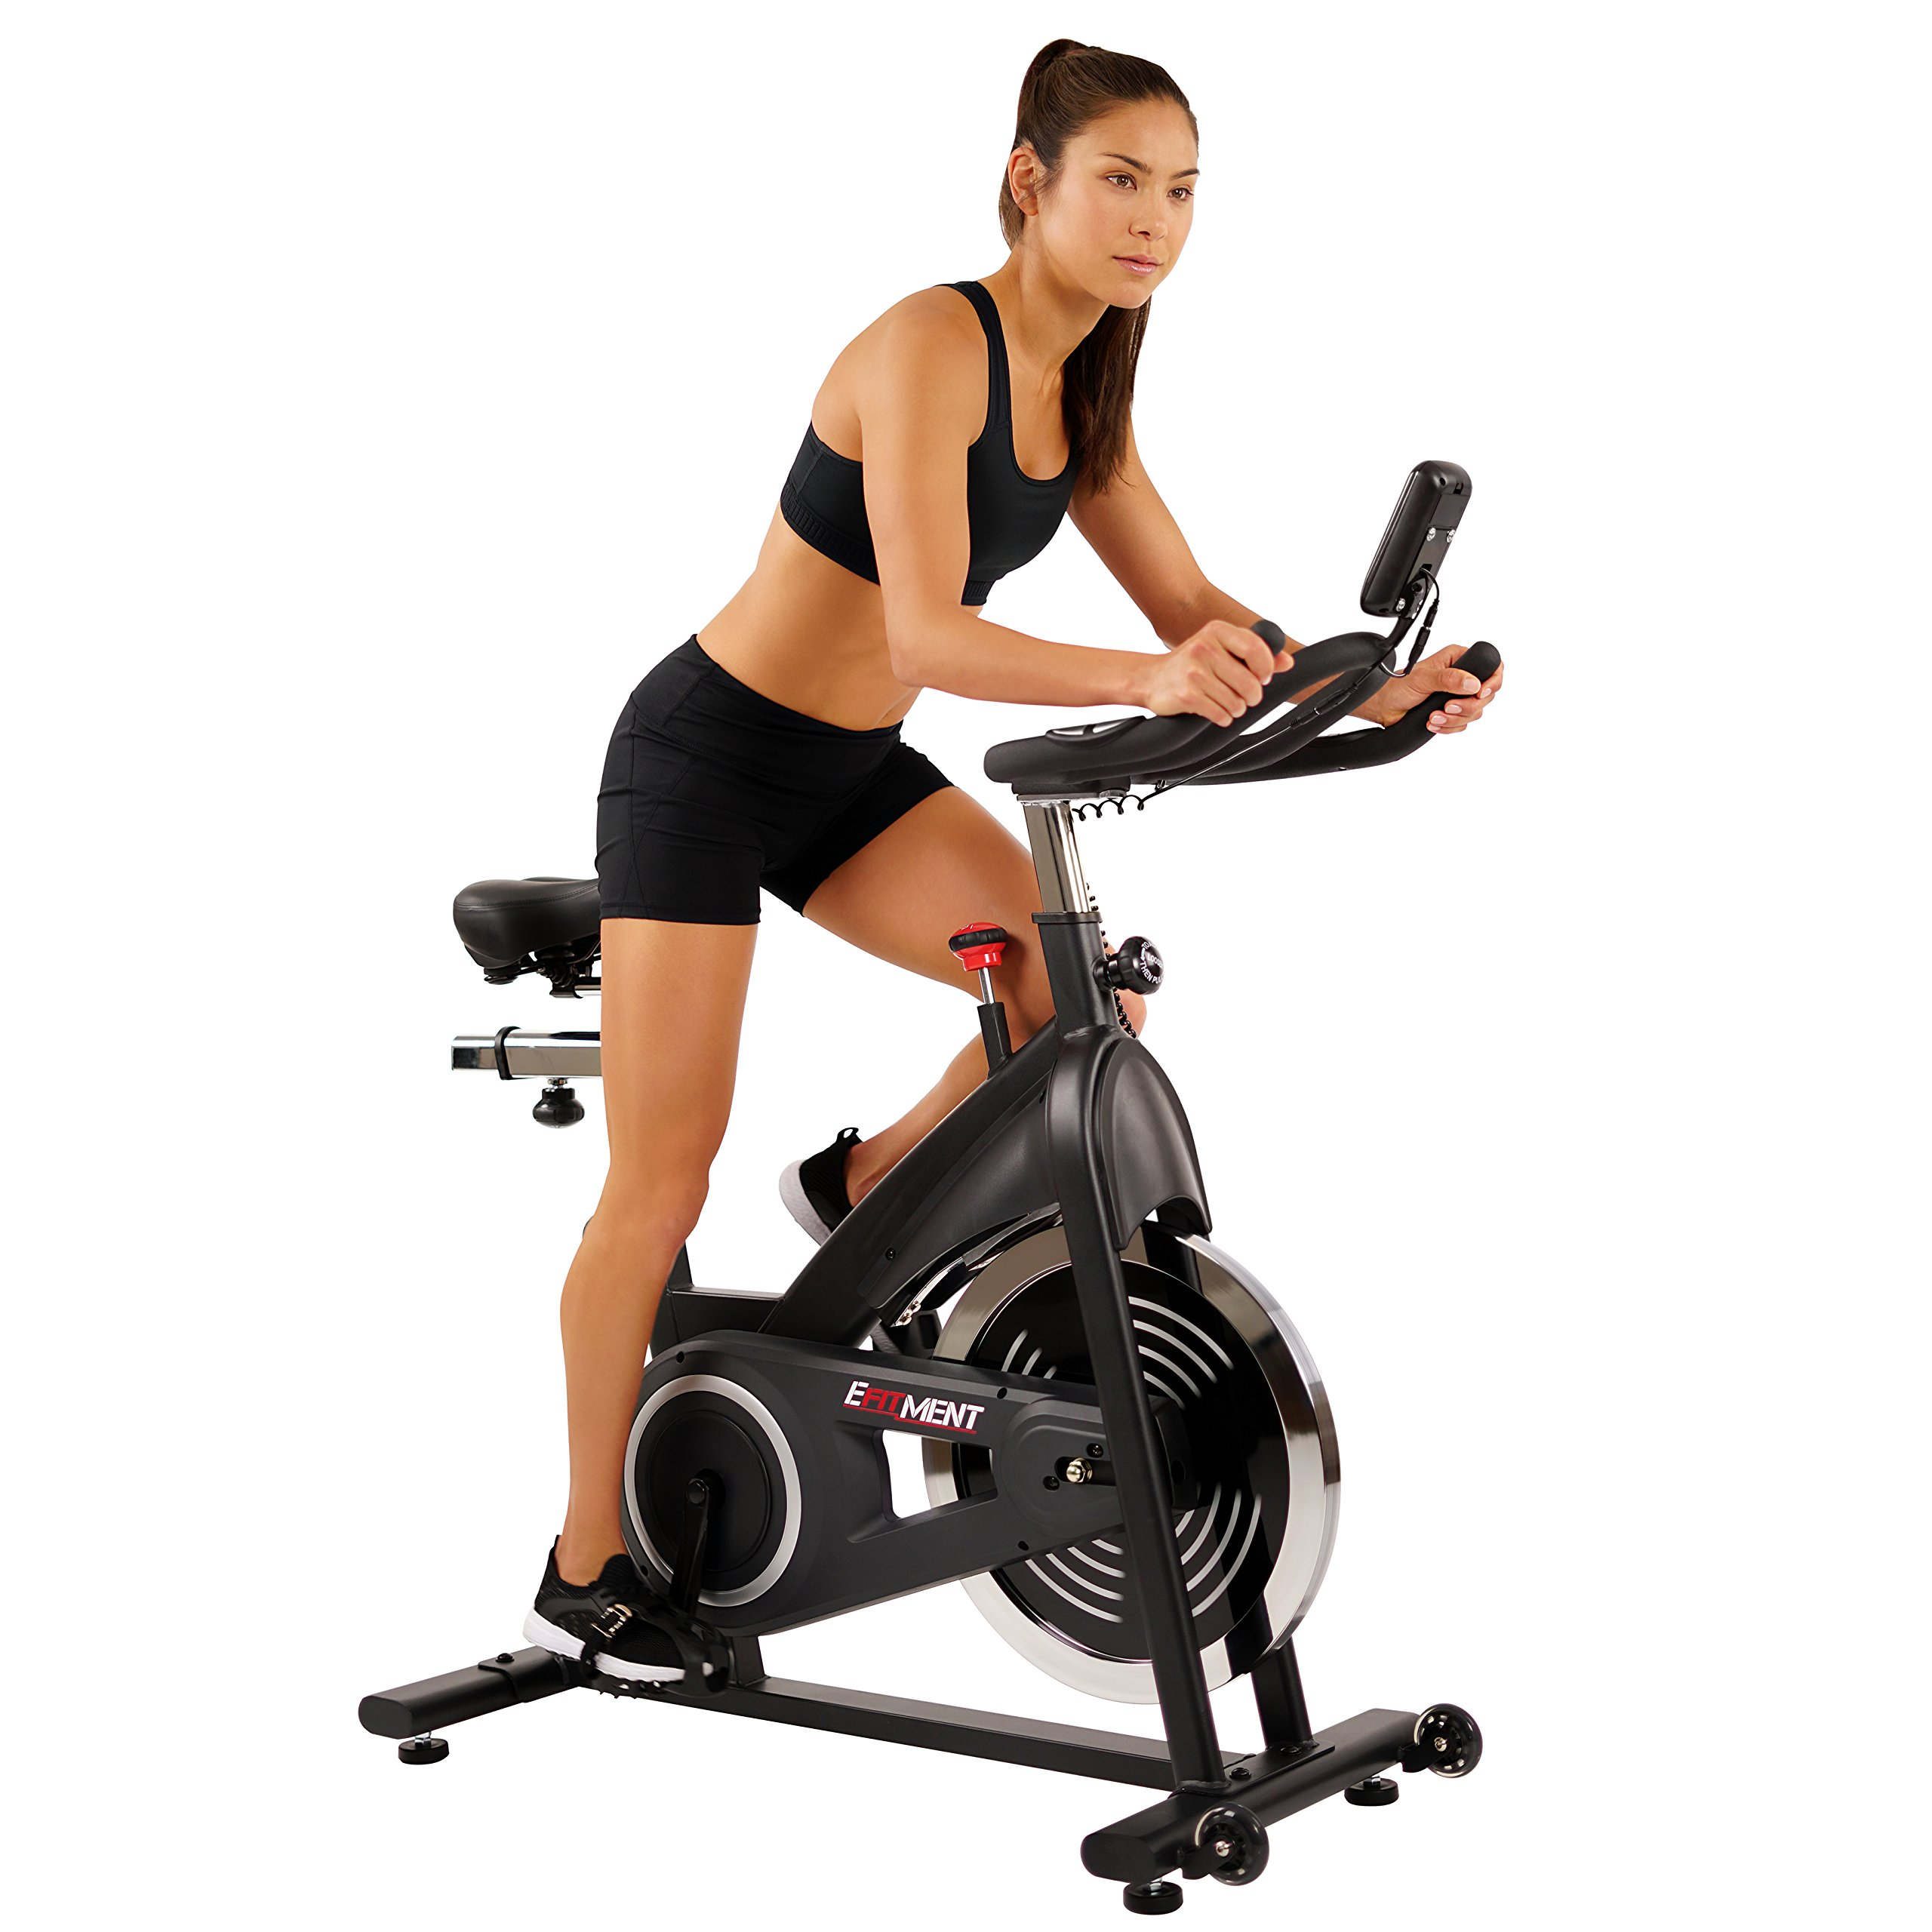 EFITMENT Indoor Cycle Bike, Belt Drive Cycling Trainer Exercise Bike IC014